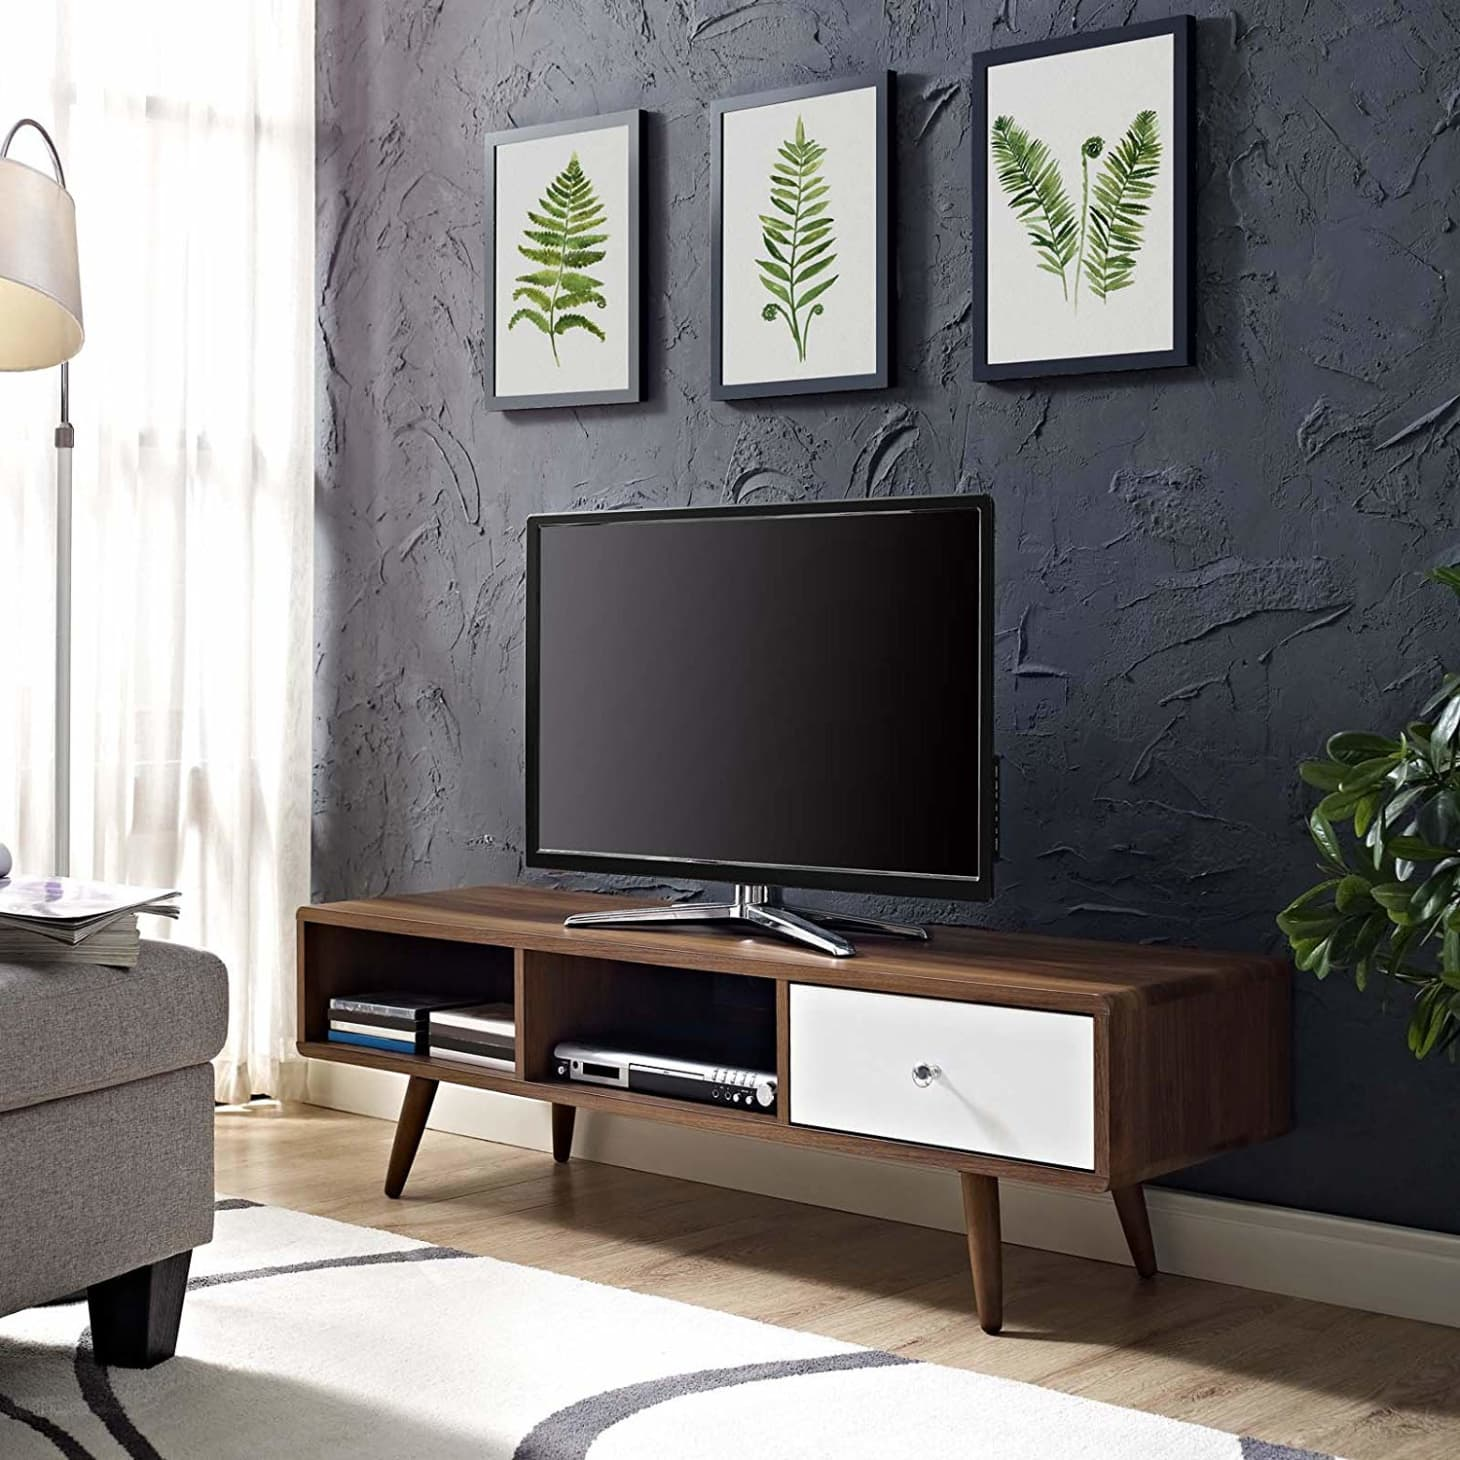 Furniture Deal Of The Day: Small Space Furniture Deals